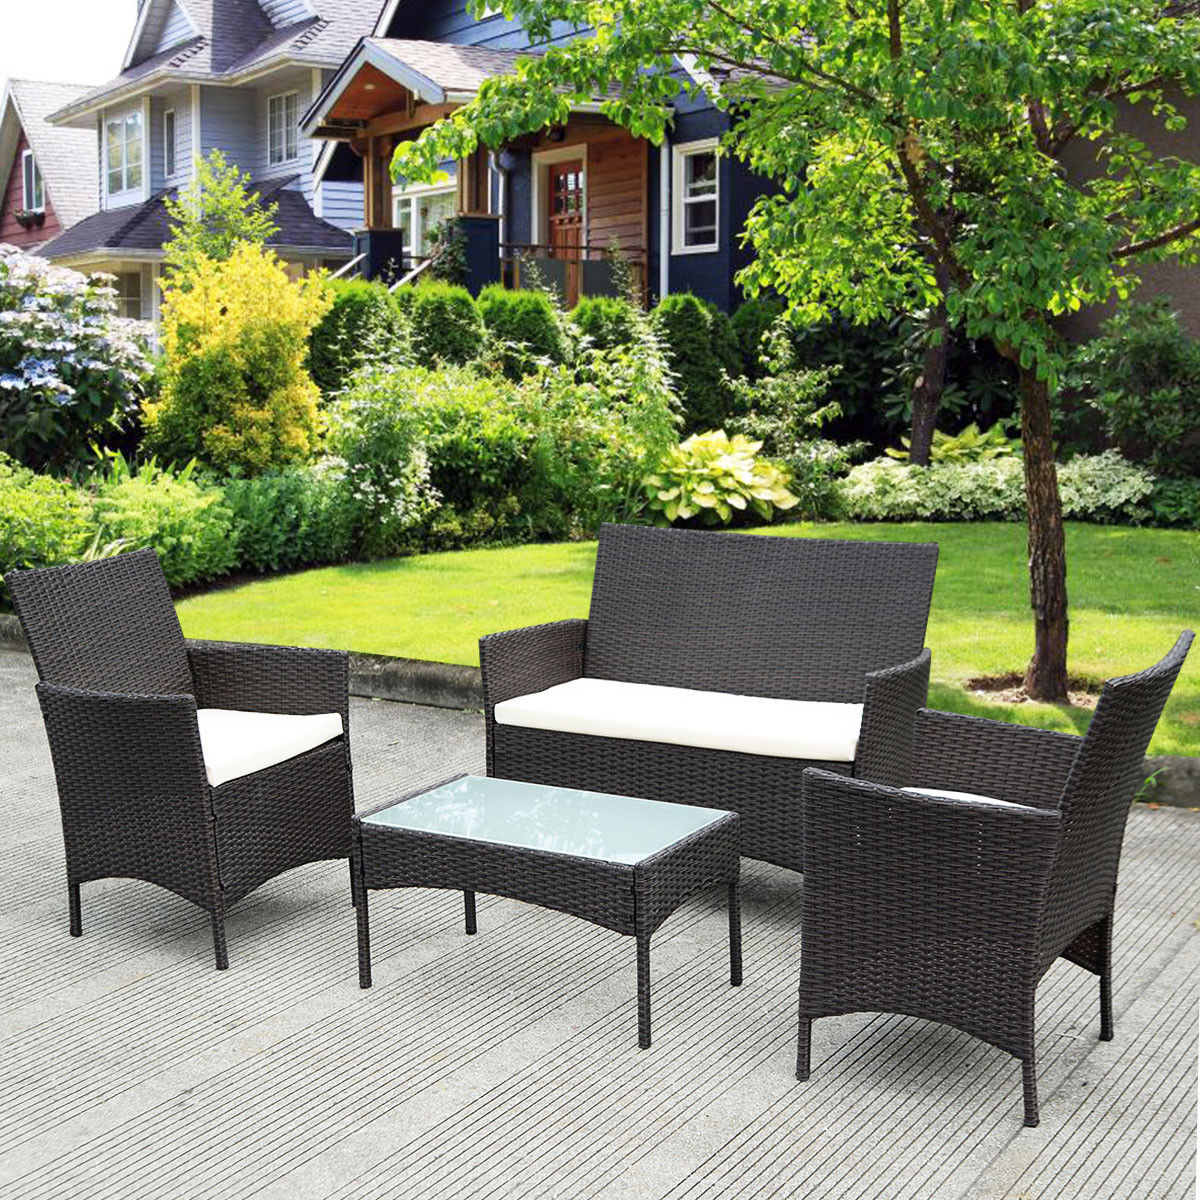 Costway 4 PC Patio Rattan Wicker Chair Sofa Table Set Outdoor Garden Furniture Cushioned